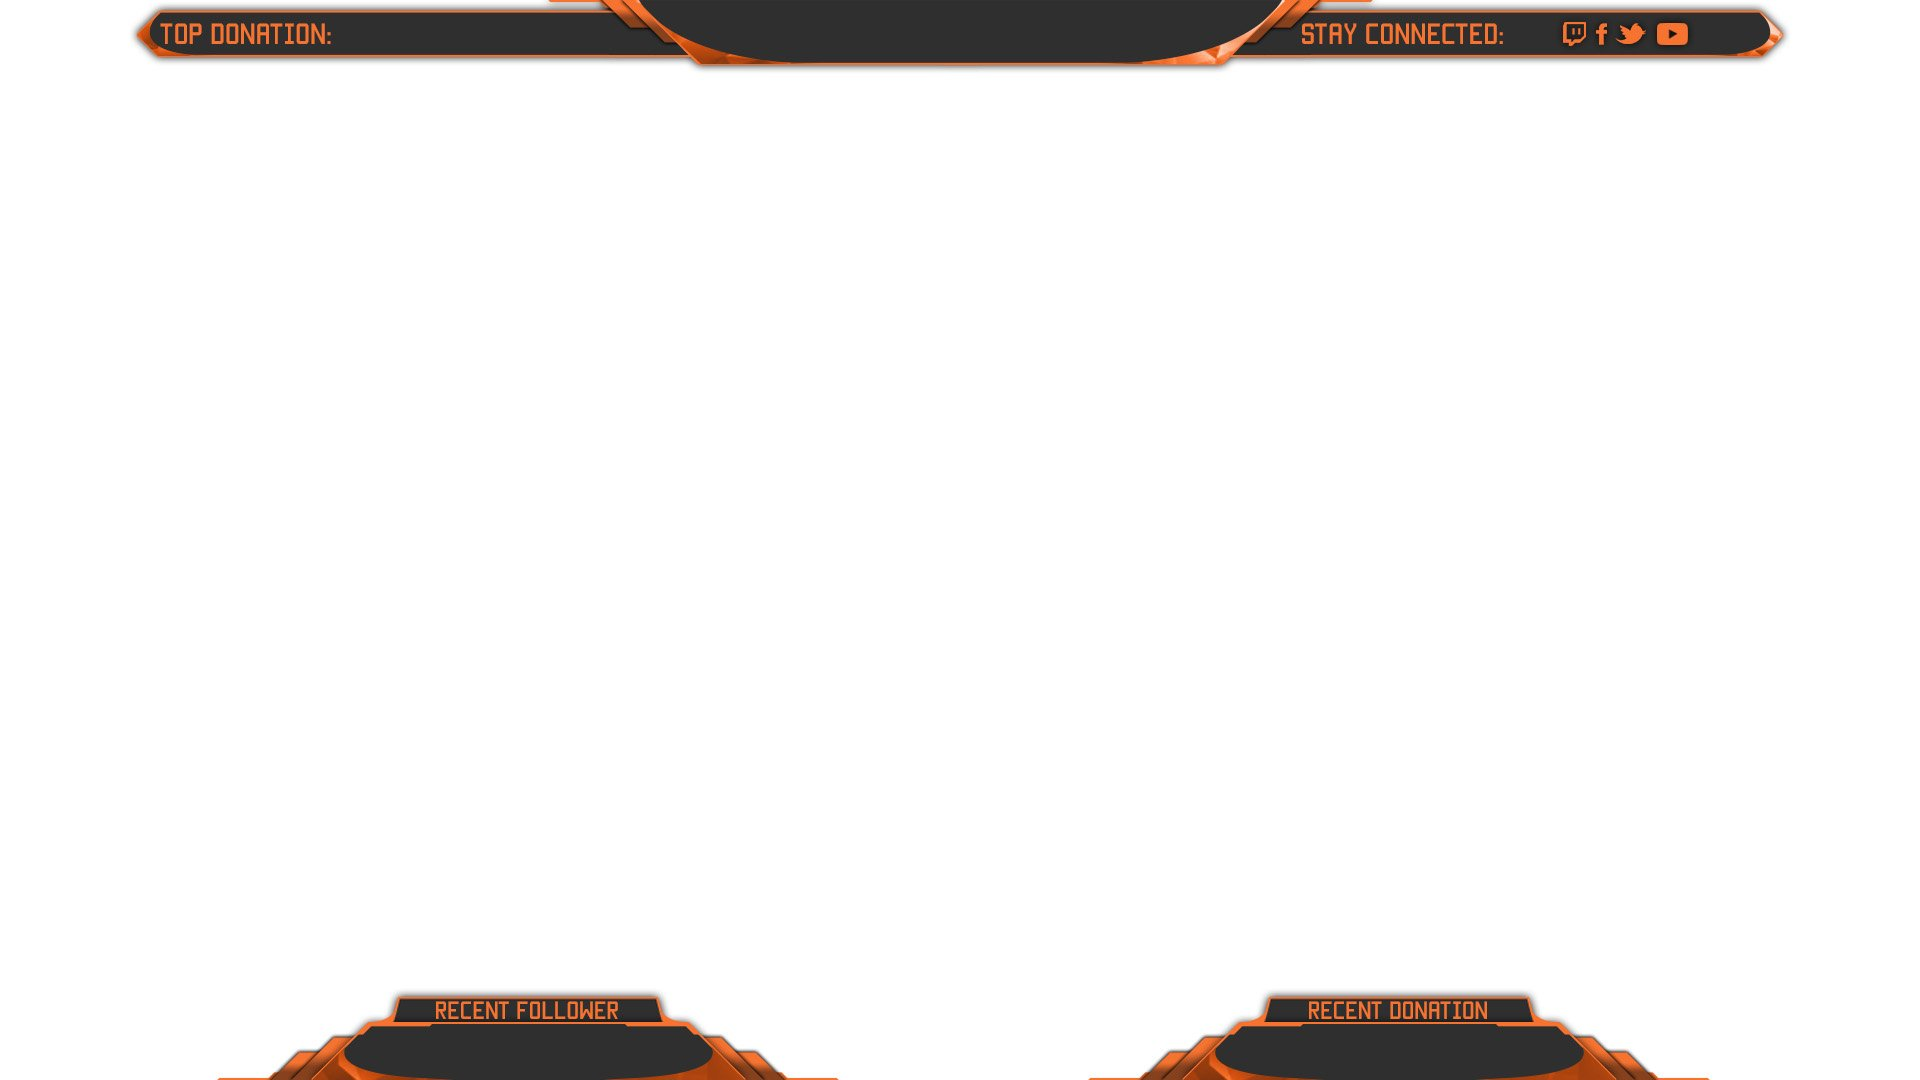 King-Playerunknown-Overlay